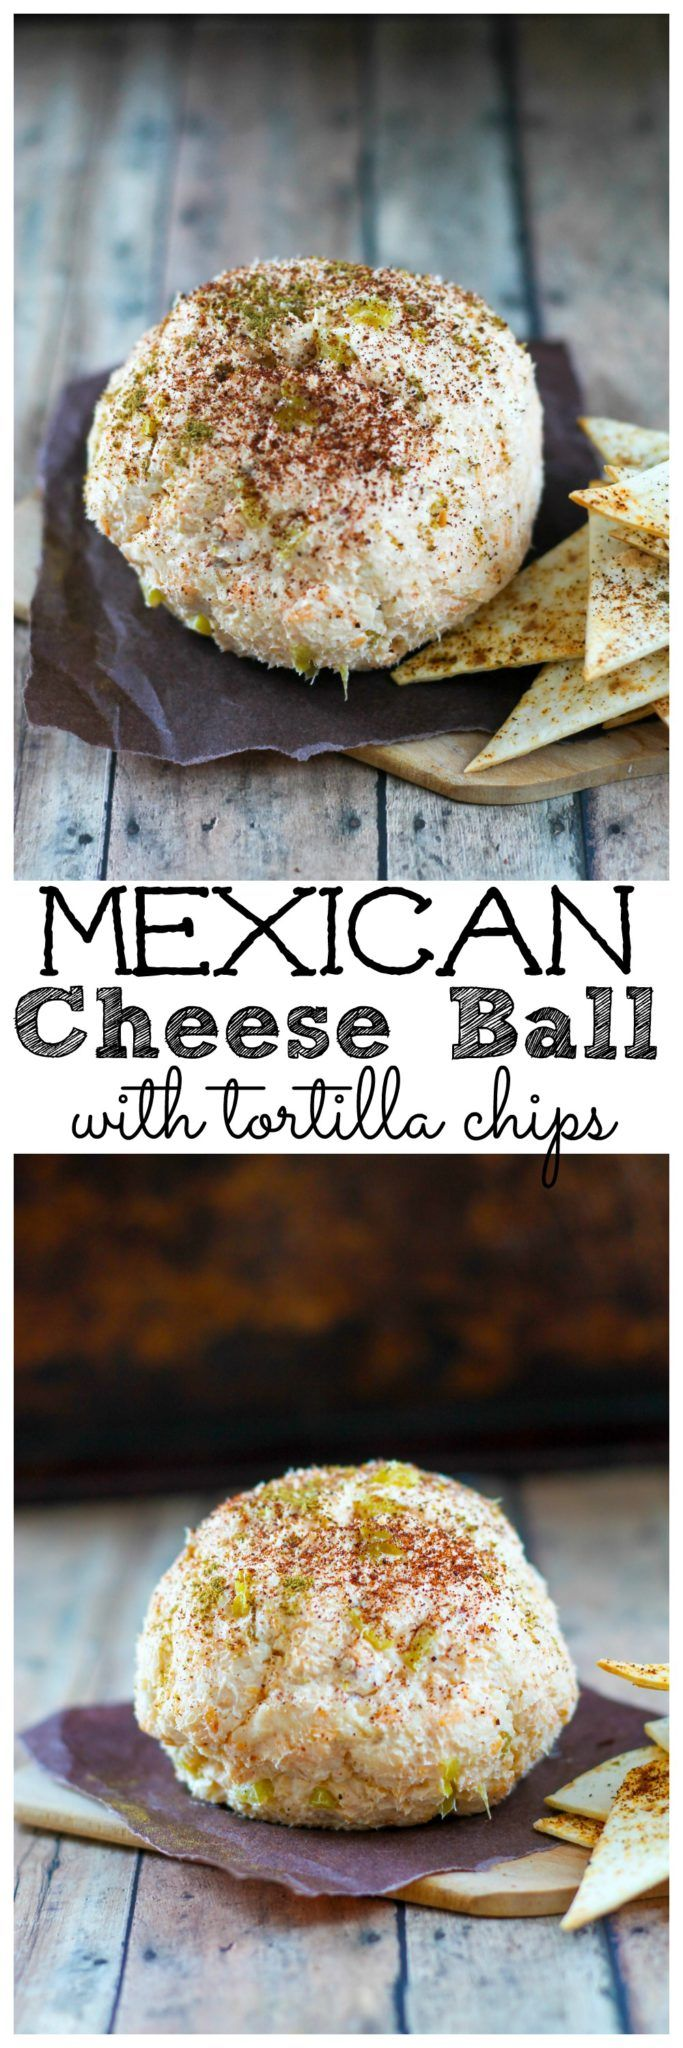 Mexican Cheese Ball with spicy tortilla chips. Looking for a spicy twist on a classic cheese ball? Try this one with with taco seasoning and green chilies. Make sure to eat it with toasty tortilla chips dusted with cumin and chili powder. Mexican Cheese Ball with tortilla chips recipe   Take Two Tapas